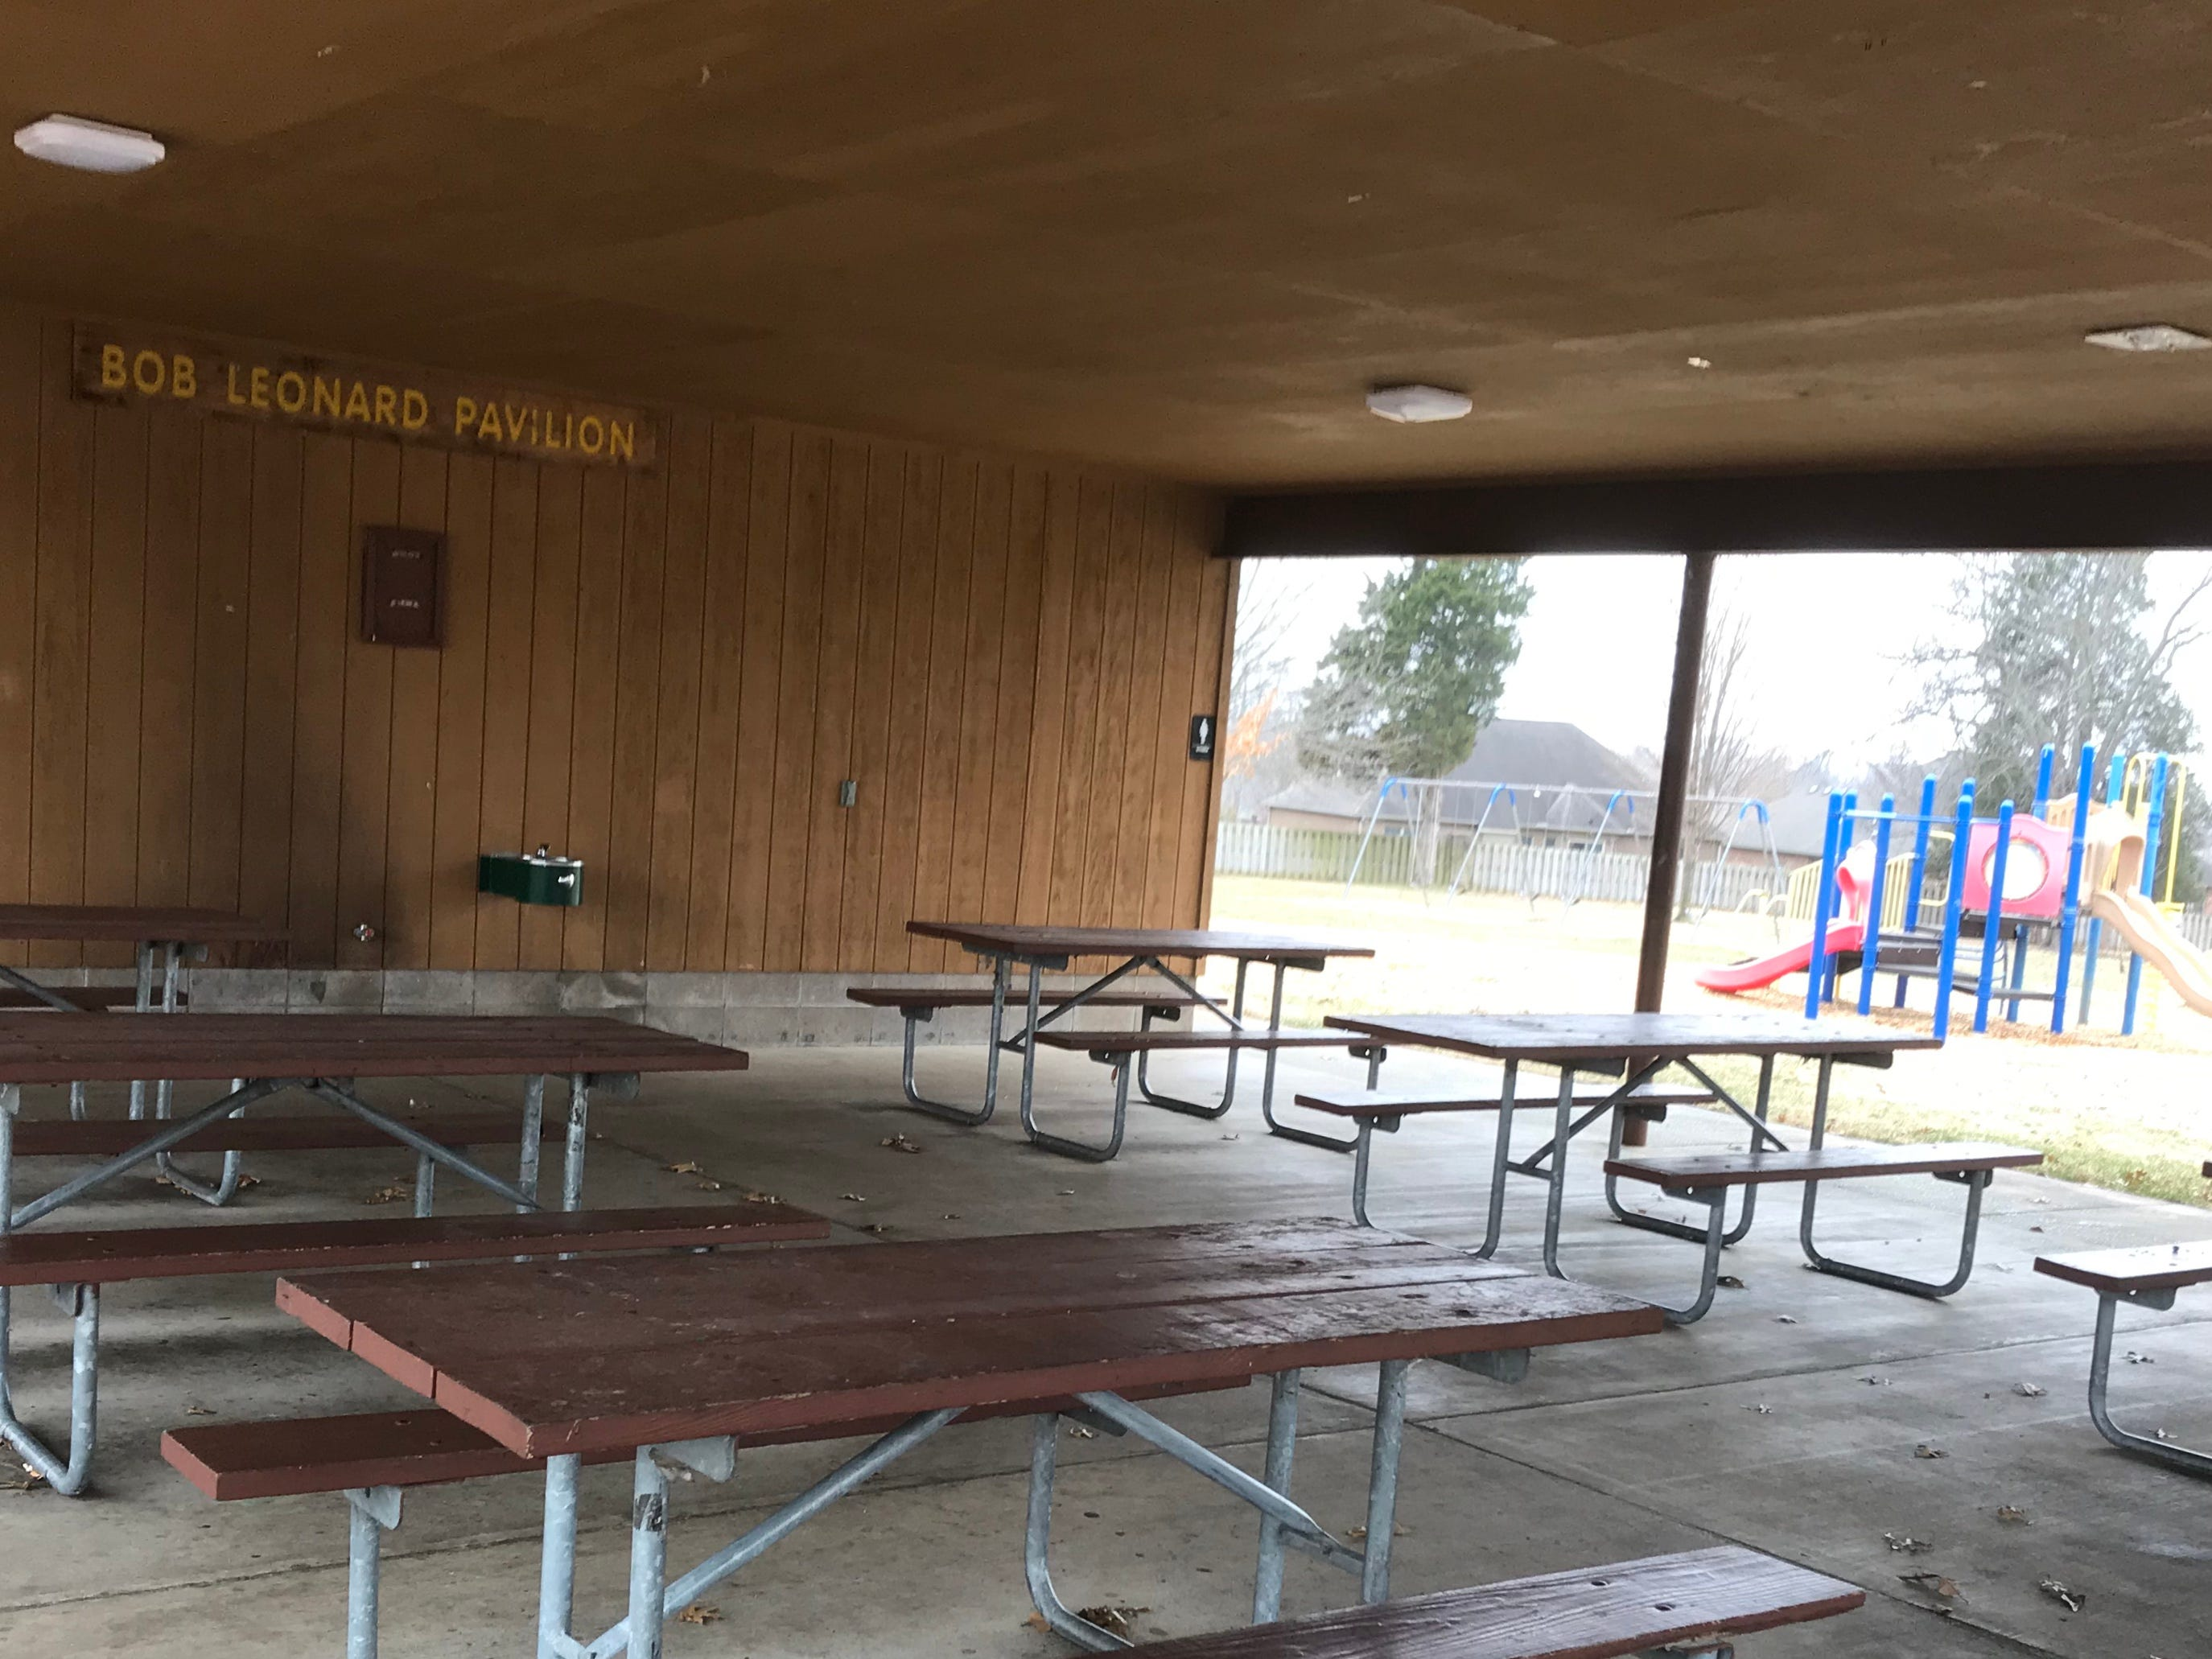 The Bob Leonard Pavilion has covered picnic tables on both sides of the building.  It is named after a volunteer who helped improve and renovate the park, which was rededicated in April 1997.